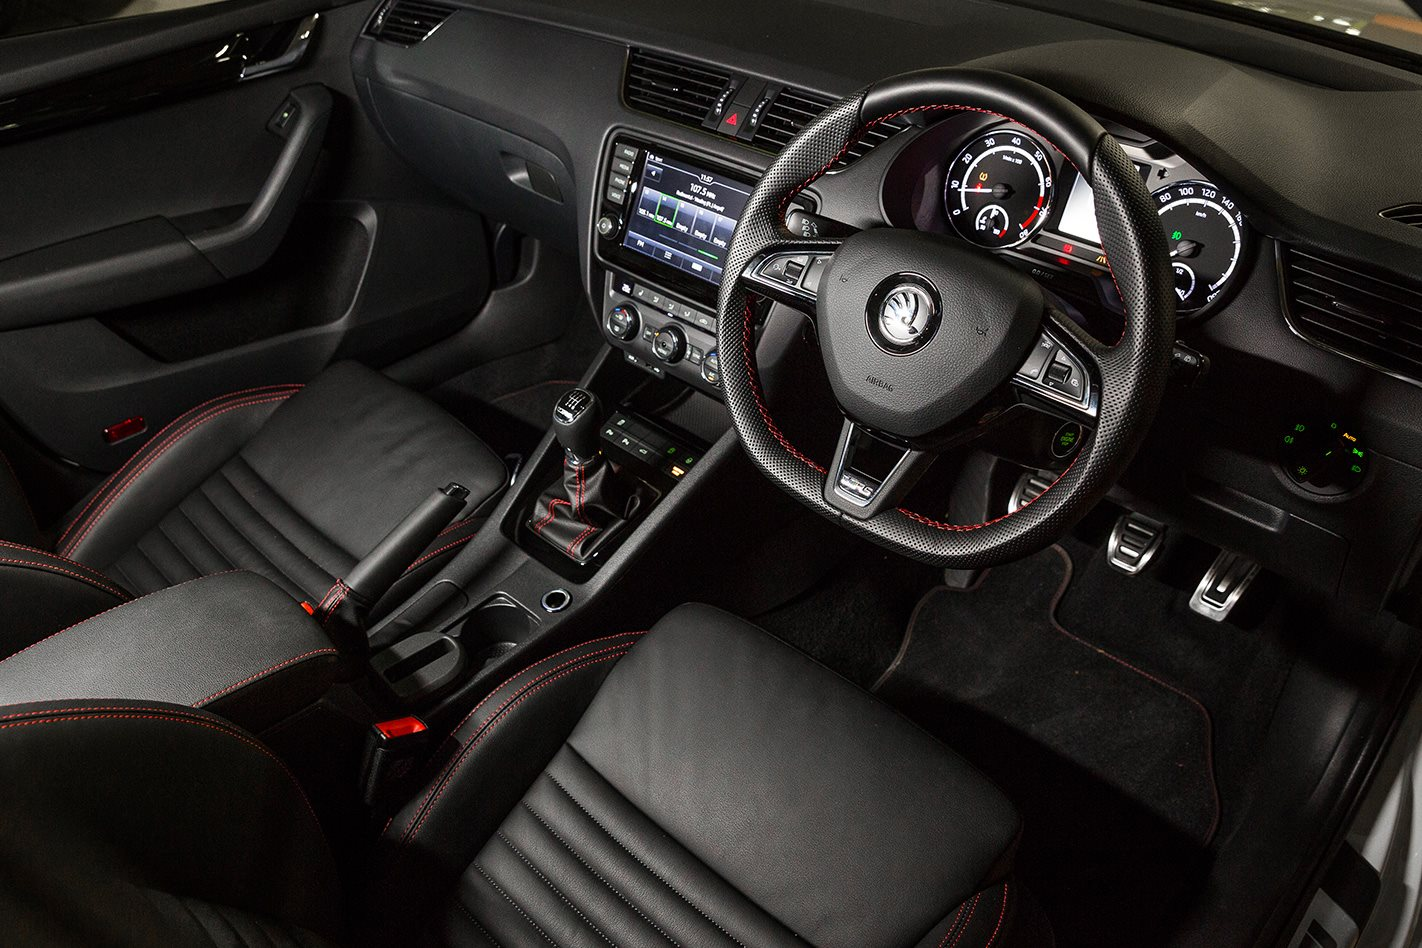 2017 Skoda Octavia RS230 interior